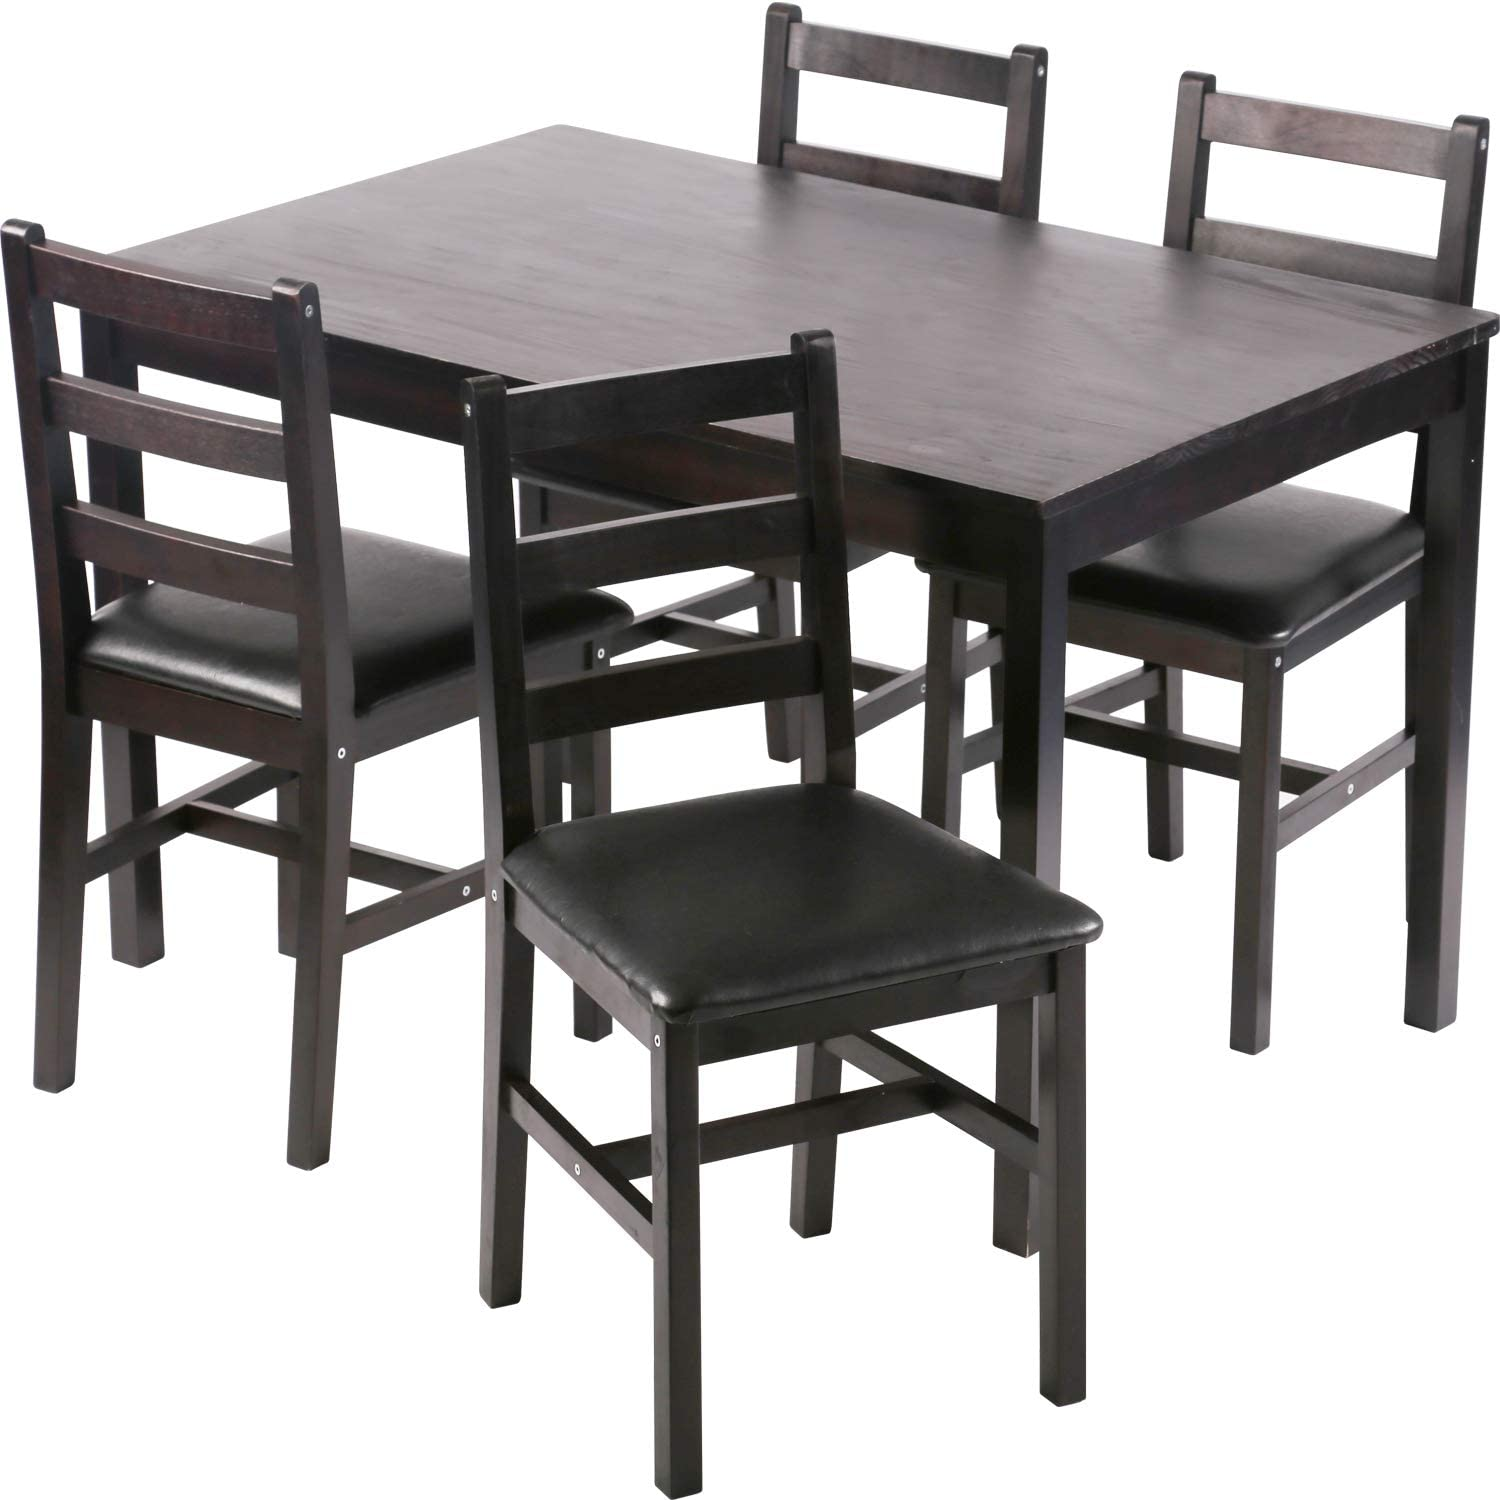 Kitchen Table and Chairs for 9 Dining Room Table Set,Wood Elegant Kitchen  Sets for Small Space,Dark Brown